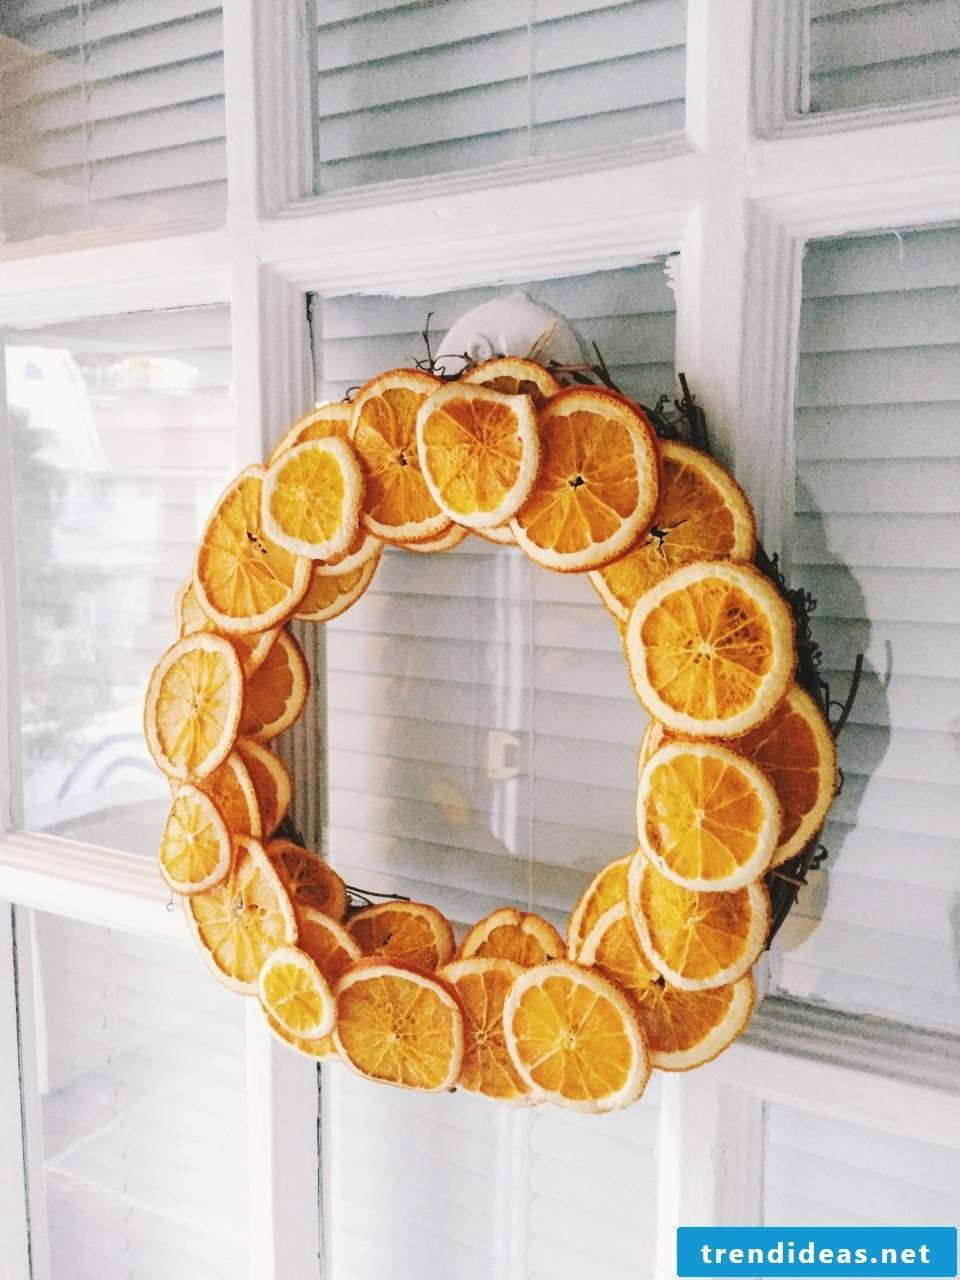 Christmas wreath of dried orange slices